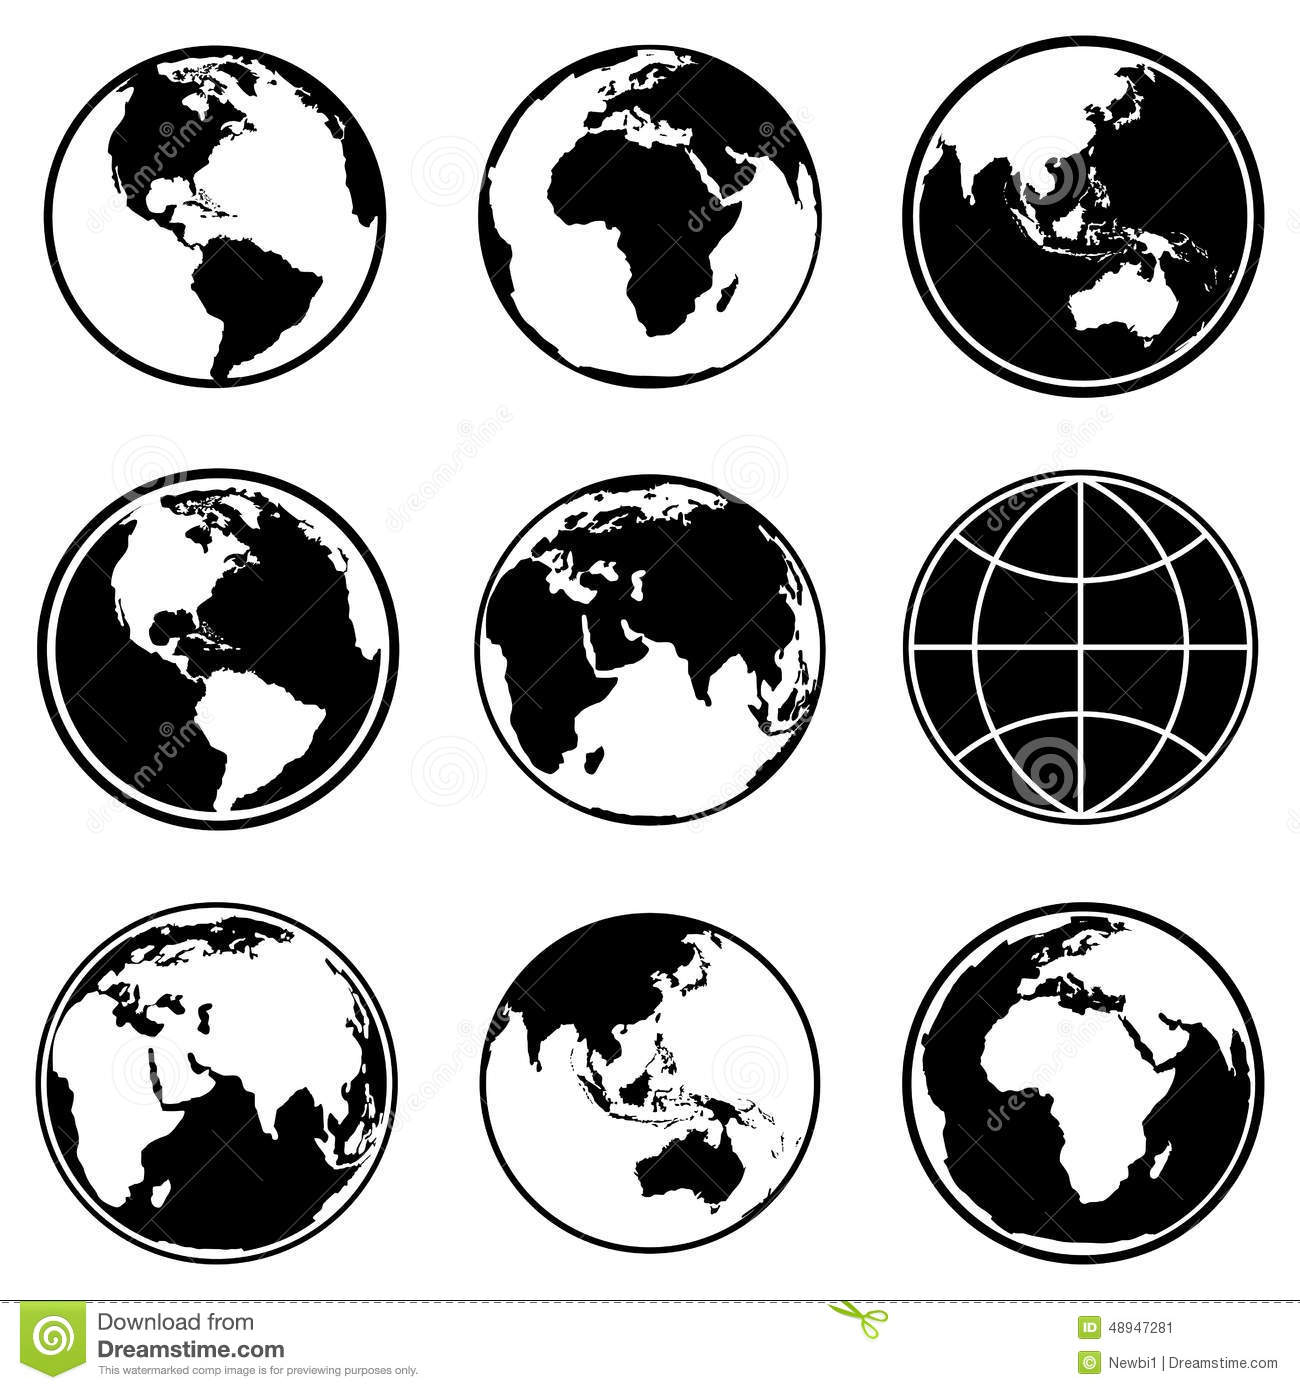 Web & Icon Vector Images (over million)